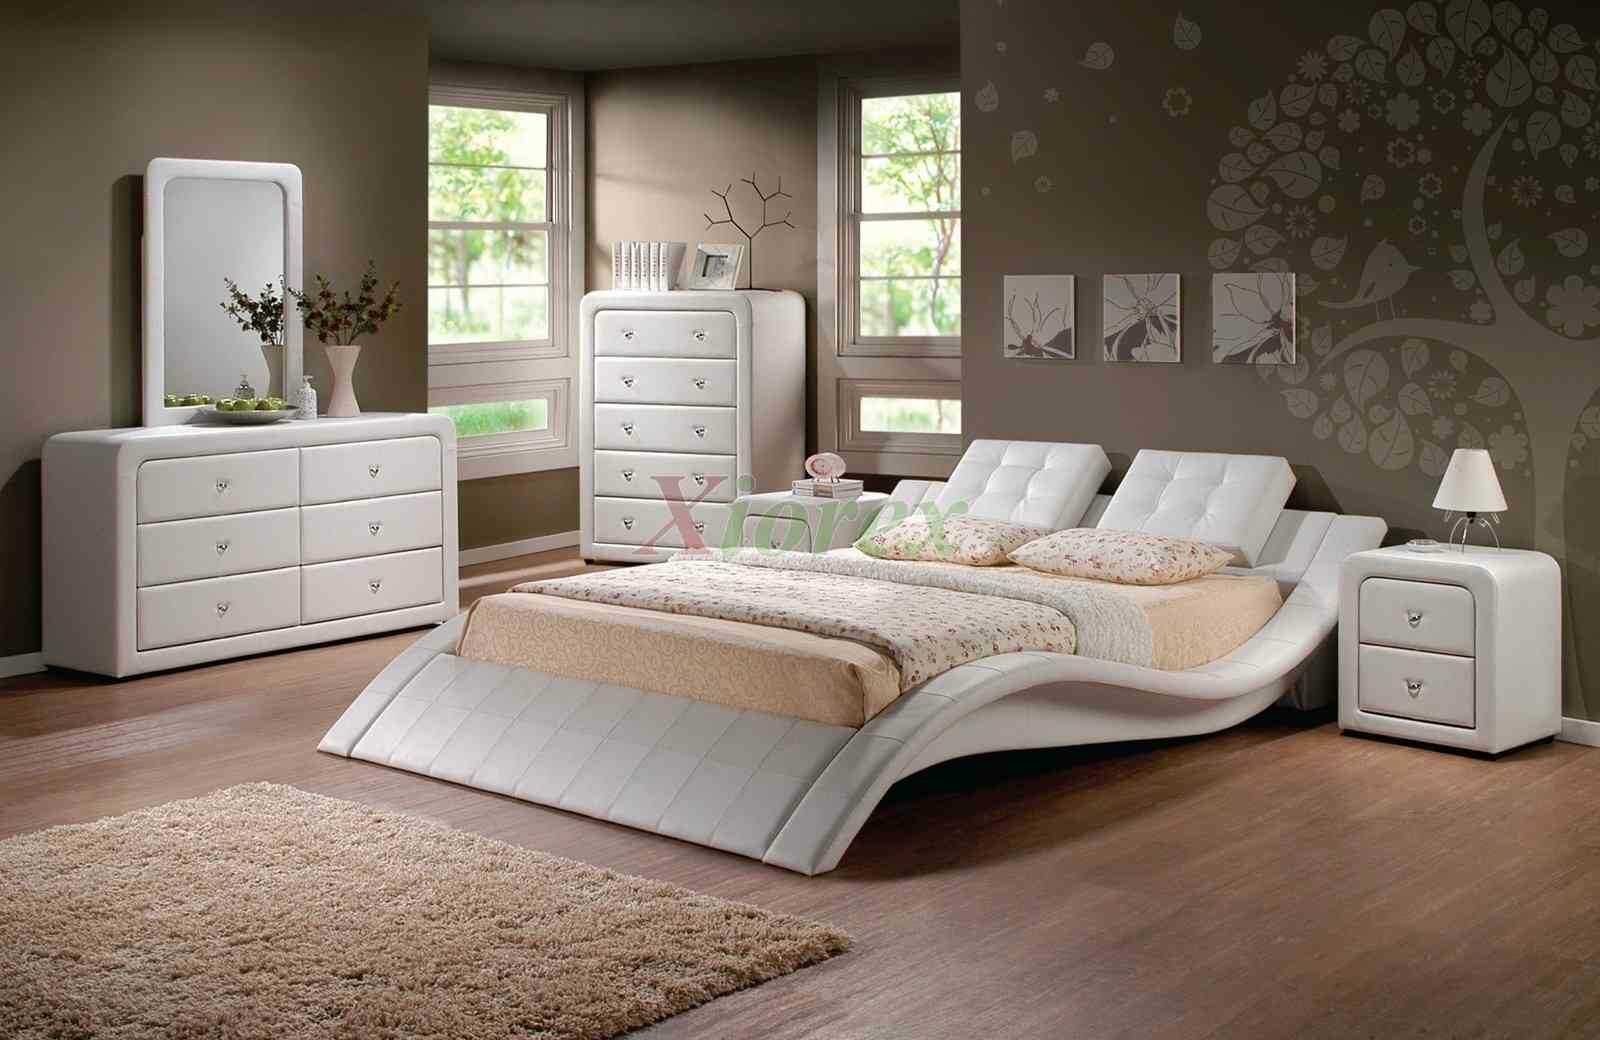 Craigslist Bed | Craigslist Bedroom Sets | Craigslist Beds for Sale